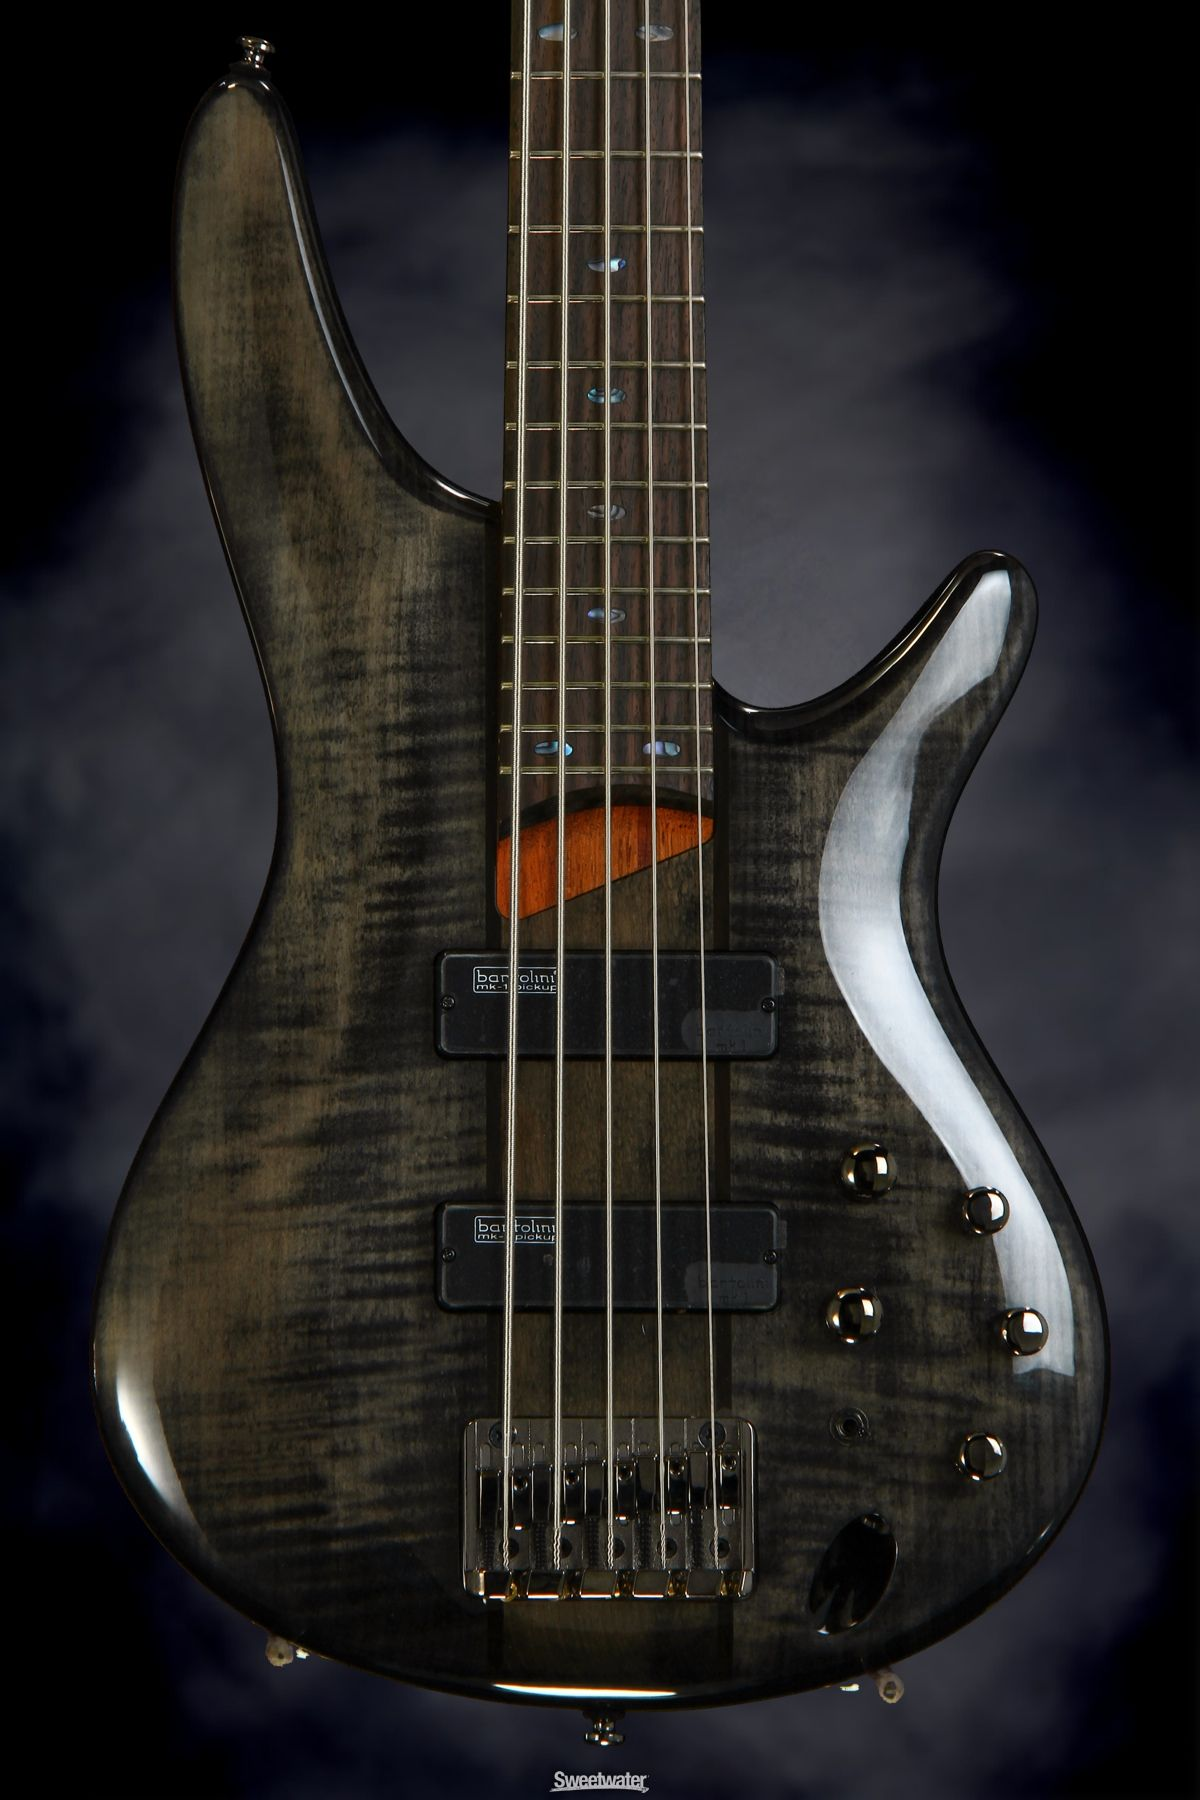 sr705 5 string electric bass guitar bad ass black basses ibanez guitar art acoustic guitar. Black Bedroom Furniture Sets. Home Design Ideas